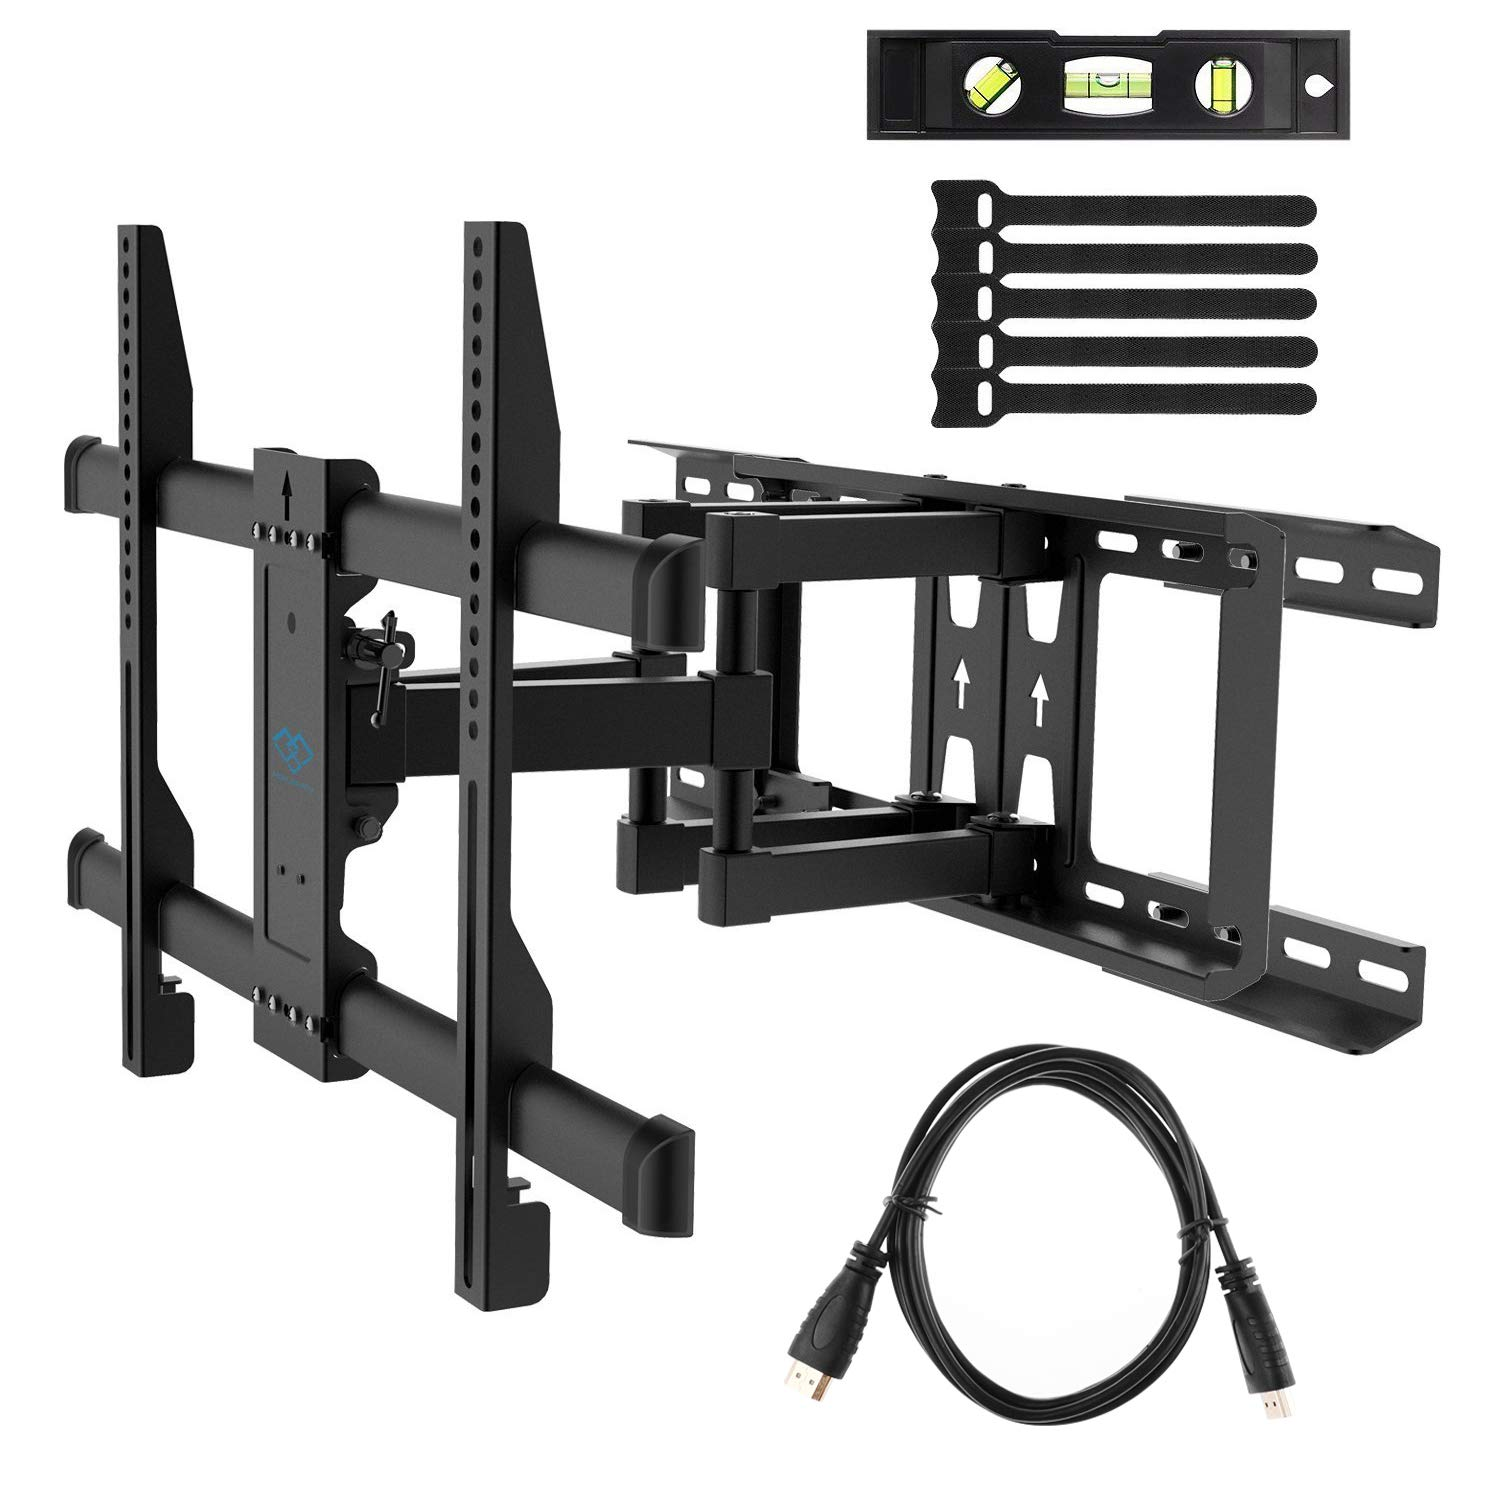 PERLESMITH Full Motion TV Wall Mount for Most 37-70 Inch TVs up to 132lbs - Fits 16'', 18'', 24'' Wood Studs - Articulating TV Mount Dual Arms with Tilts, Swivels & Extends 16'', Max VESA 600x400mm by PERLESMITH